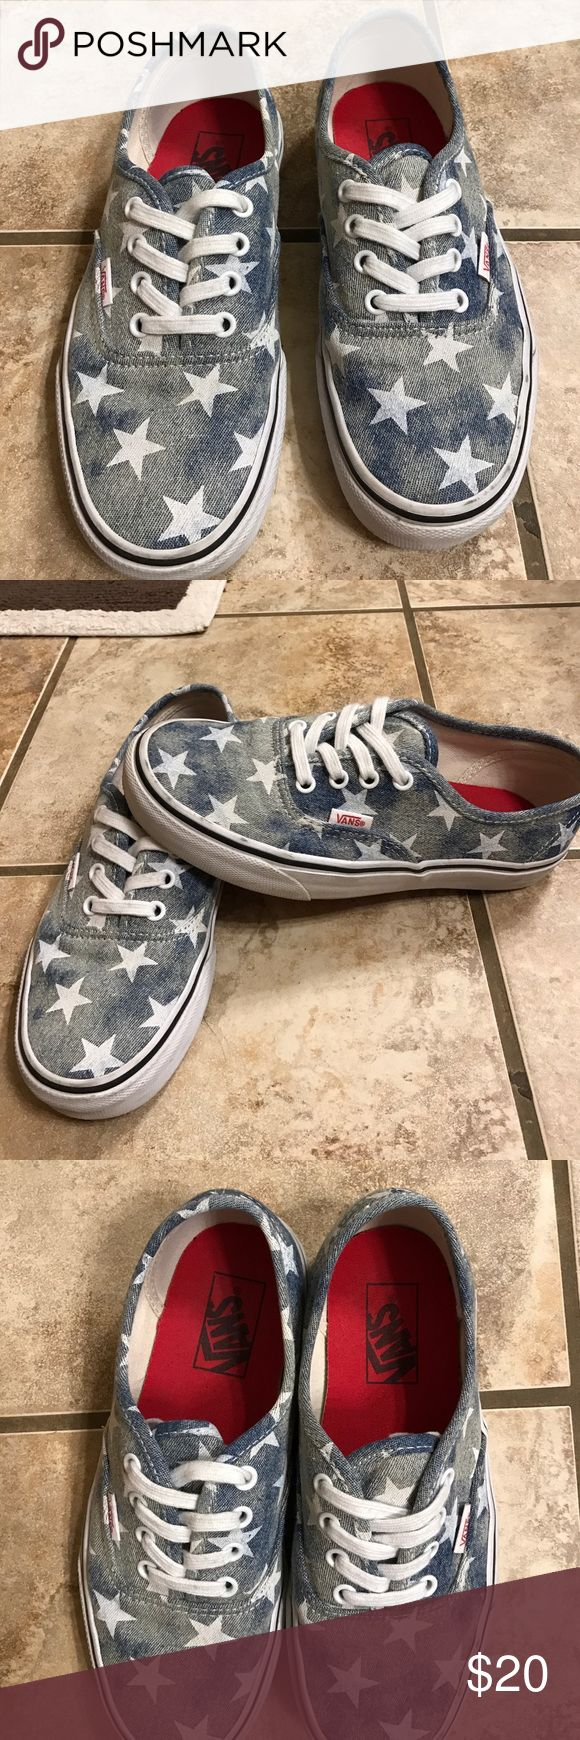 🌼VANS TENNIS SHOES🌼🌼 ❤VANS Tennis Shoes, gently used, Blue with white stars❤Authentic!! Vans Shoes Sneakers